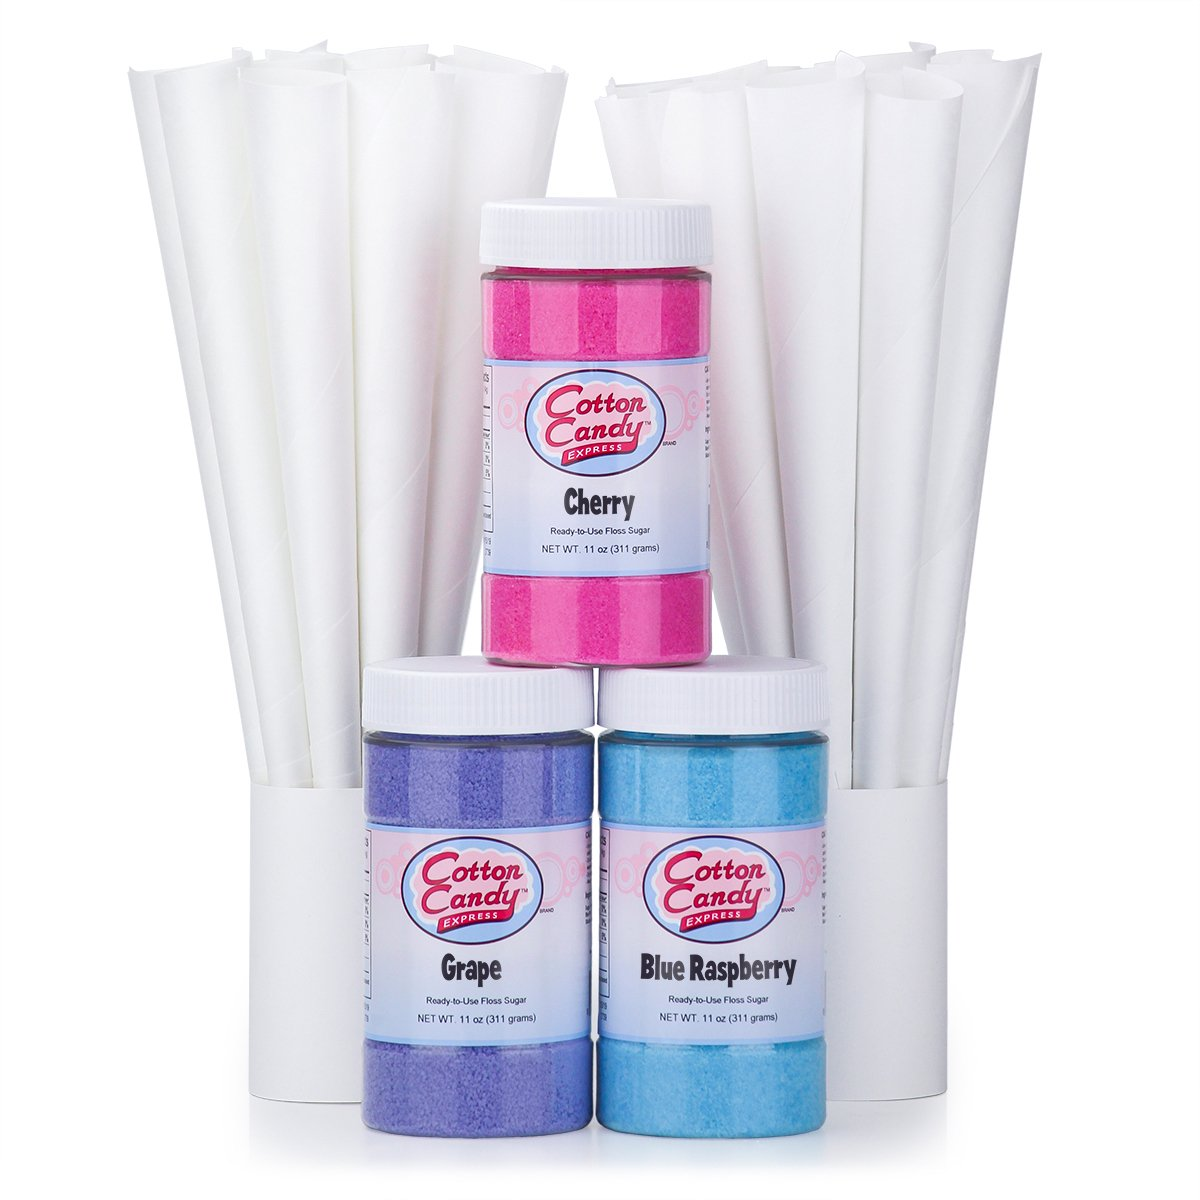 Cotton Candy Express Fun Pack | Kit Features Cherry, Blue Raspberry & Grape Floss Sugars (11 oz Each) & 50 Paper Cones | Best Cotton Candy Maker Supplies | For Home or Commercial Use